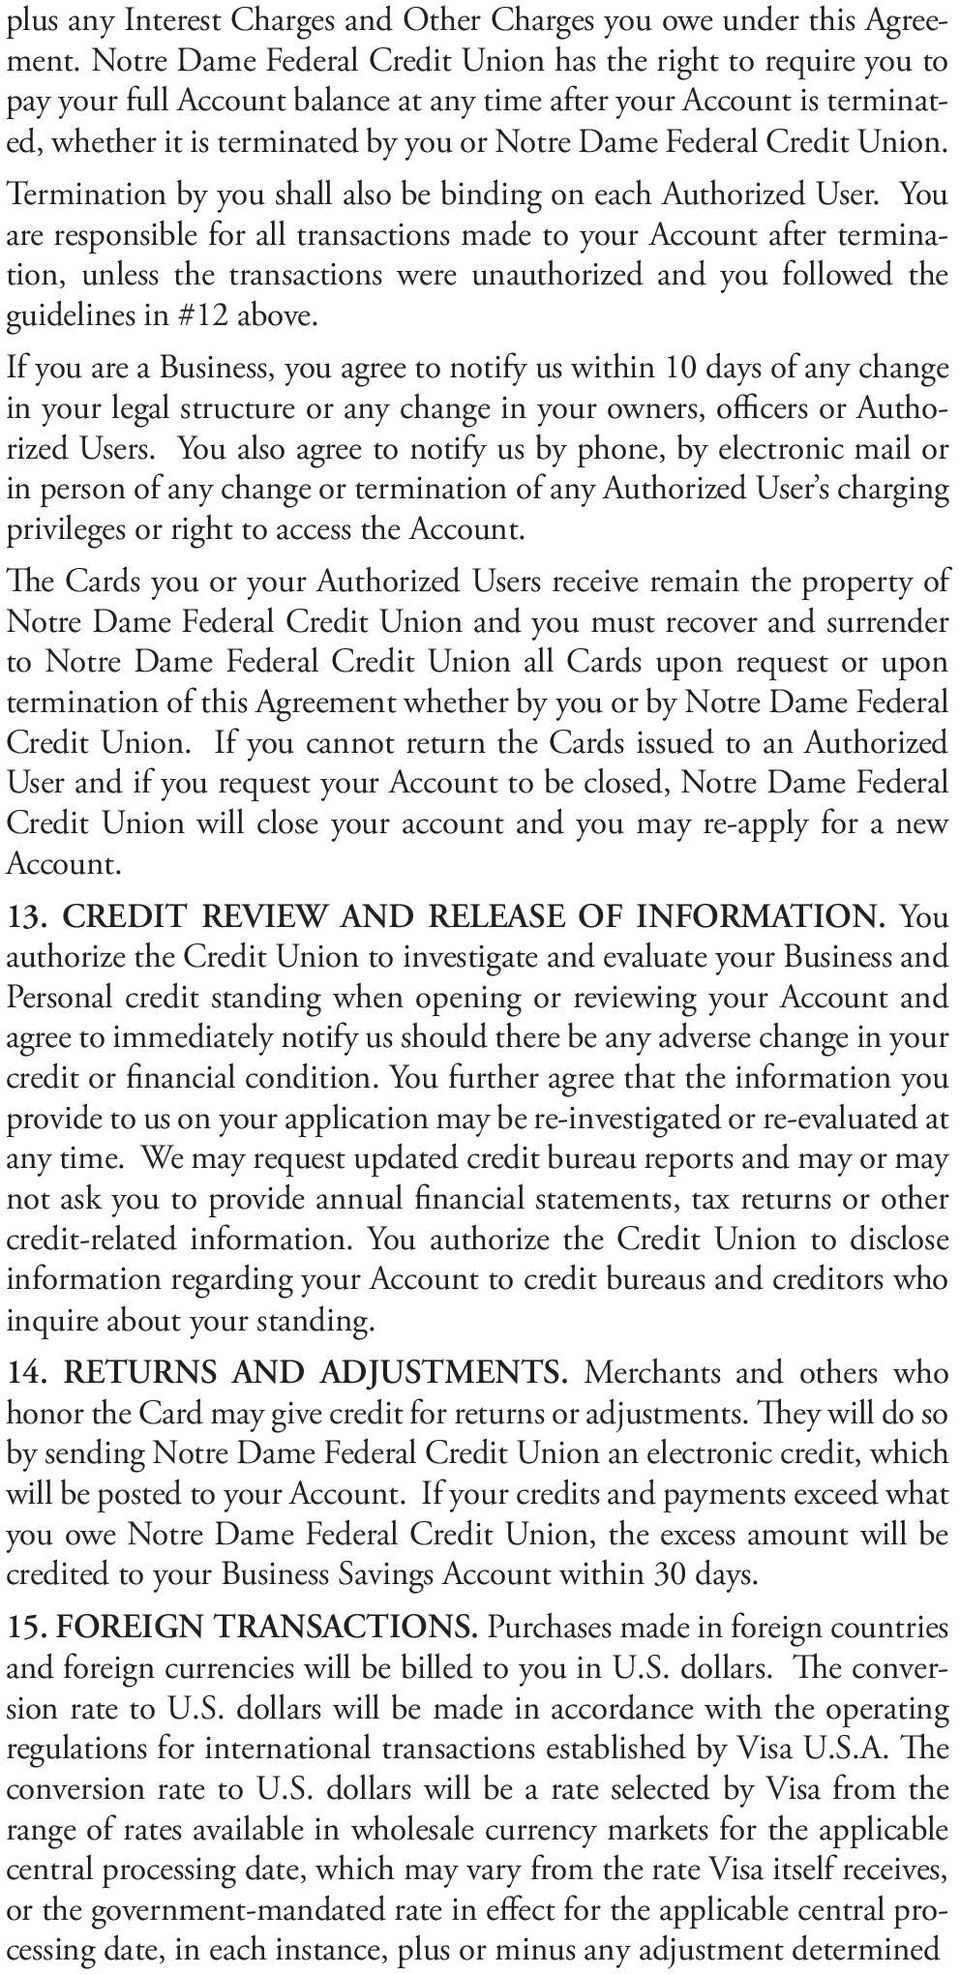 Credit Union. Termination by you shall also be binding on each Authorized User.